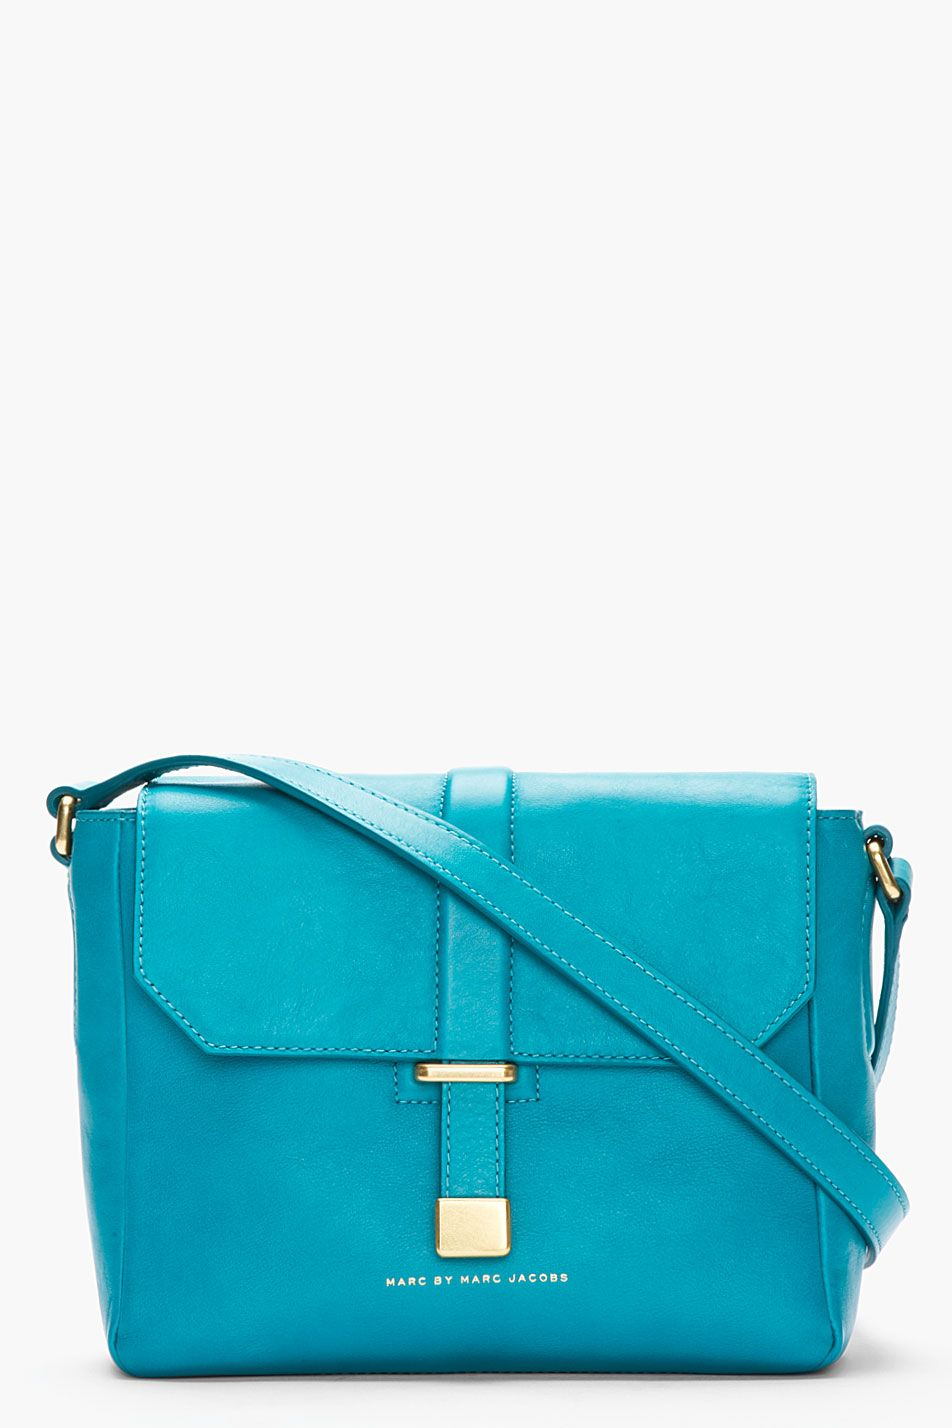 MARC BY MARC JACOBS Teal leather mini messenger bag